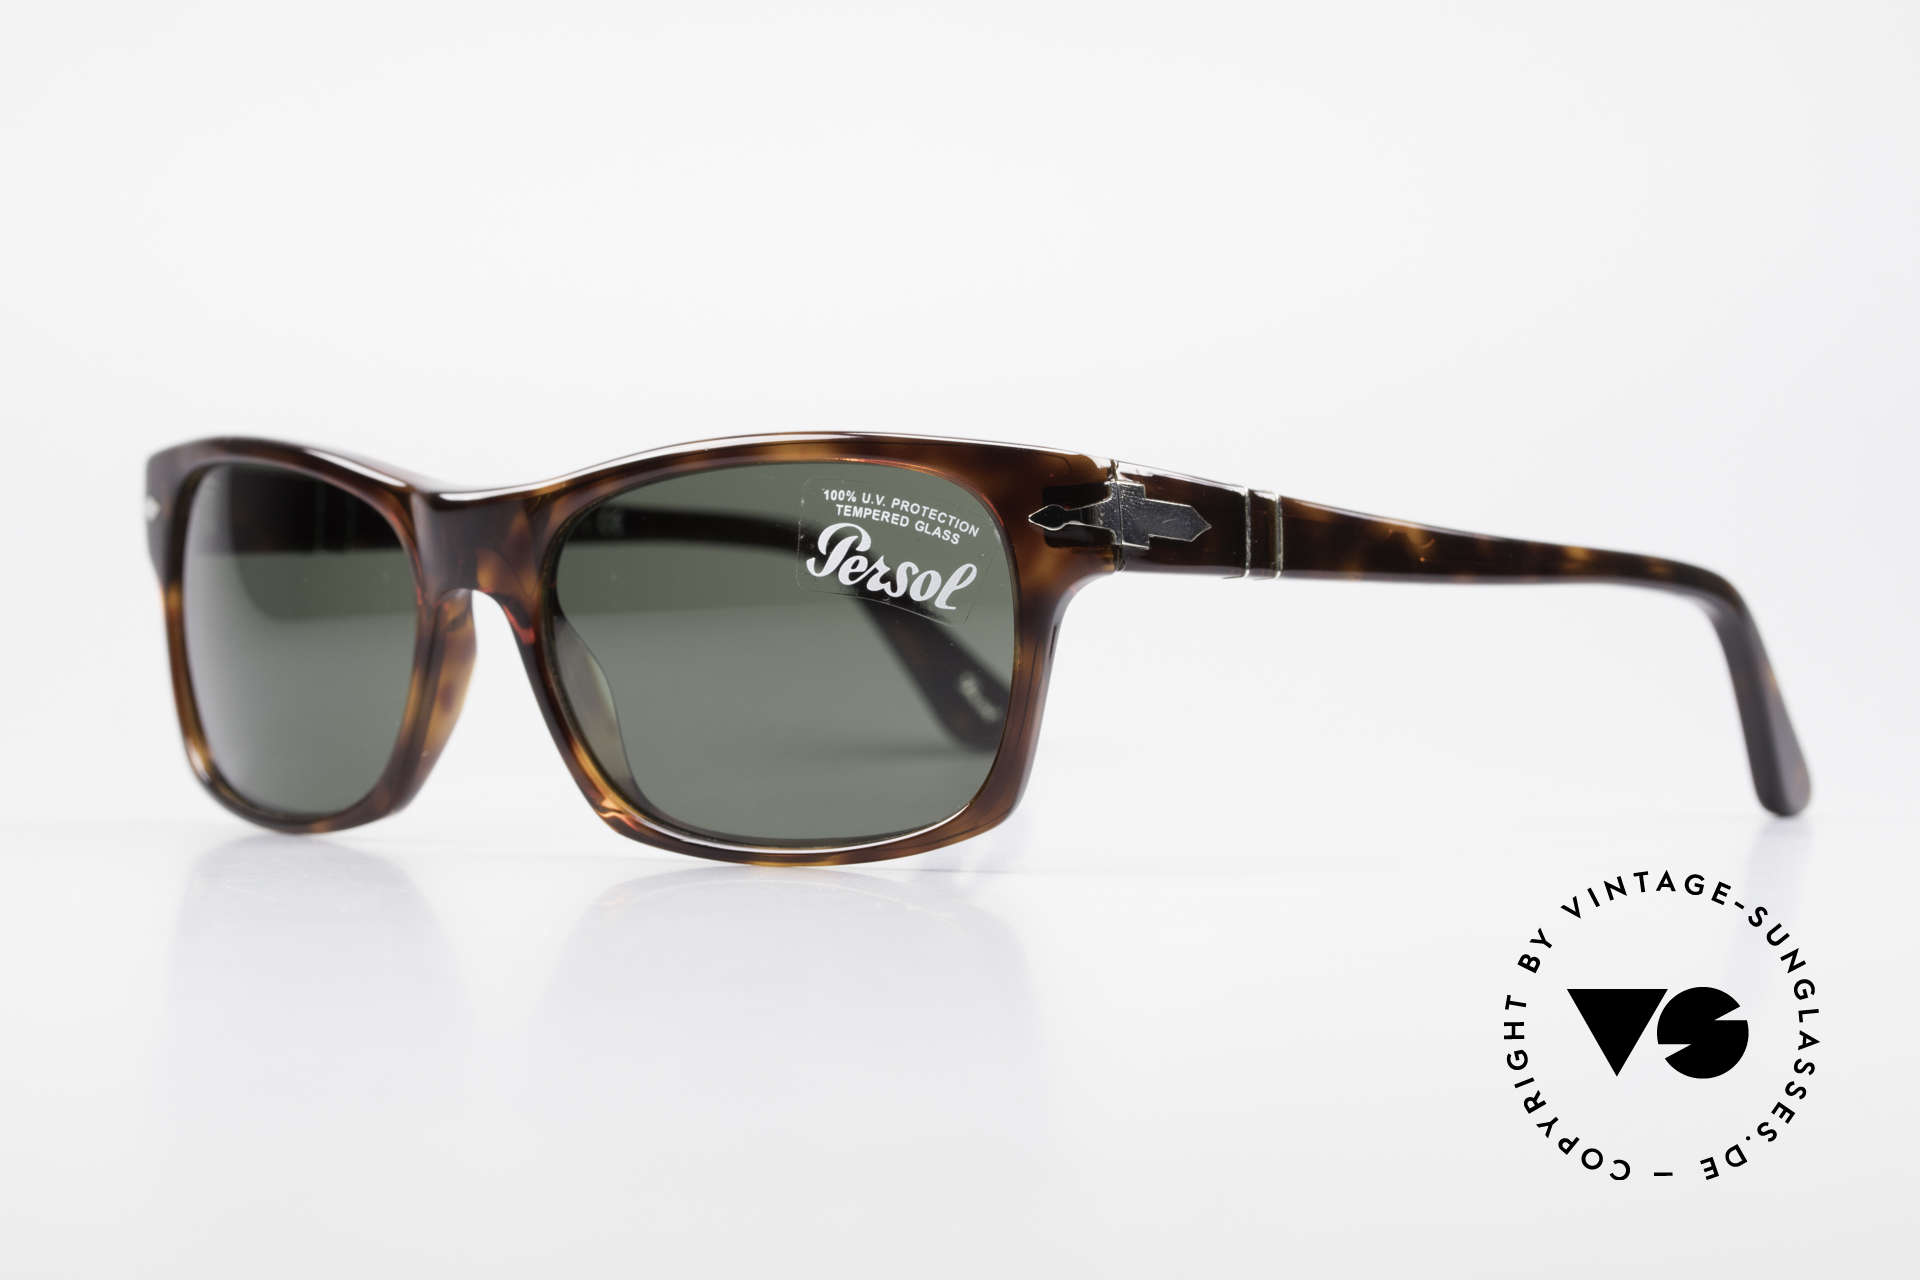 Persol 3037 Designer Sunglasses Unisex L, Steve McQueen made Persol RATTI models world-famous, Made for Men and Women